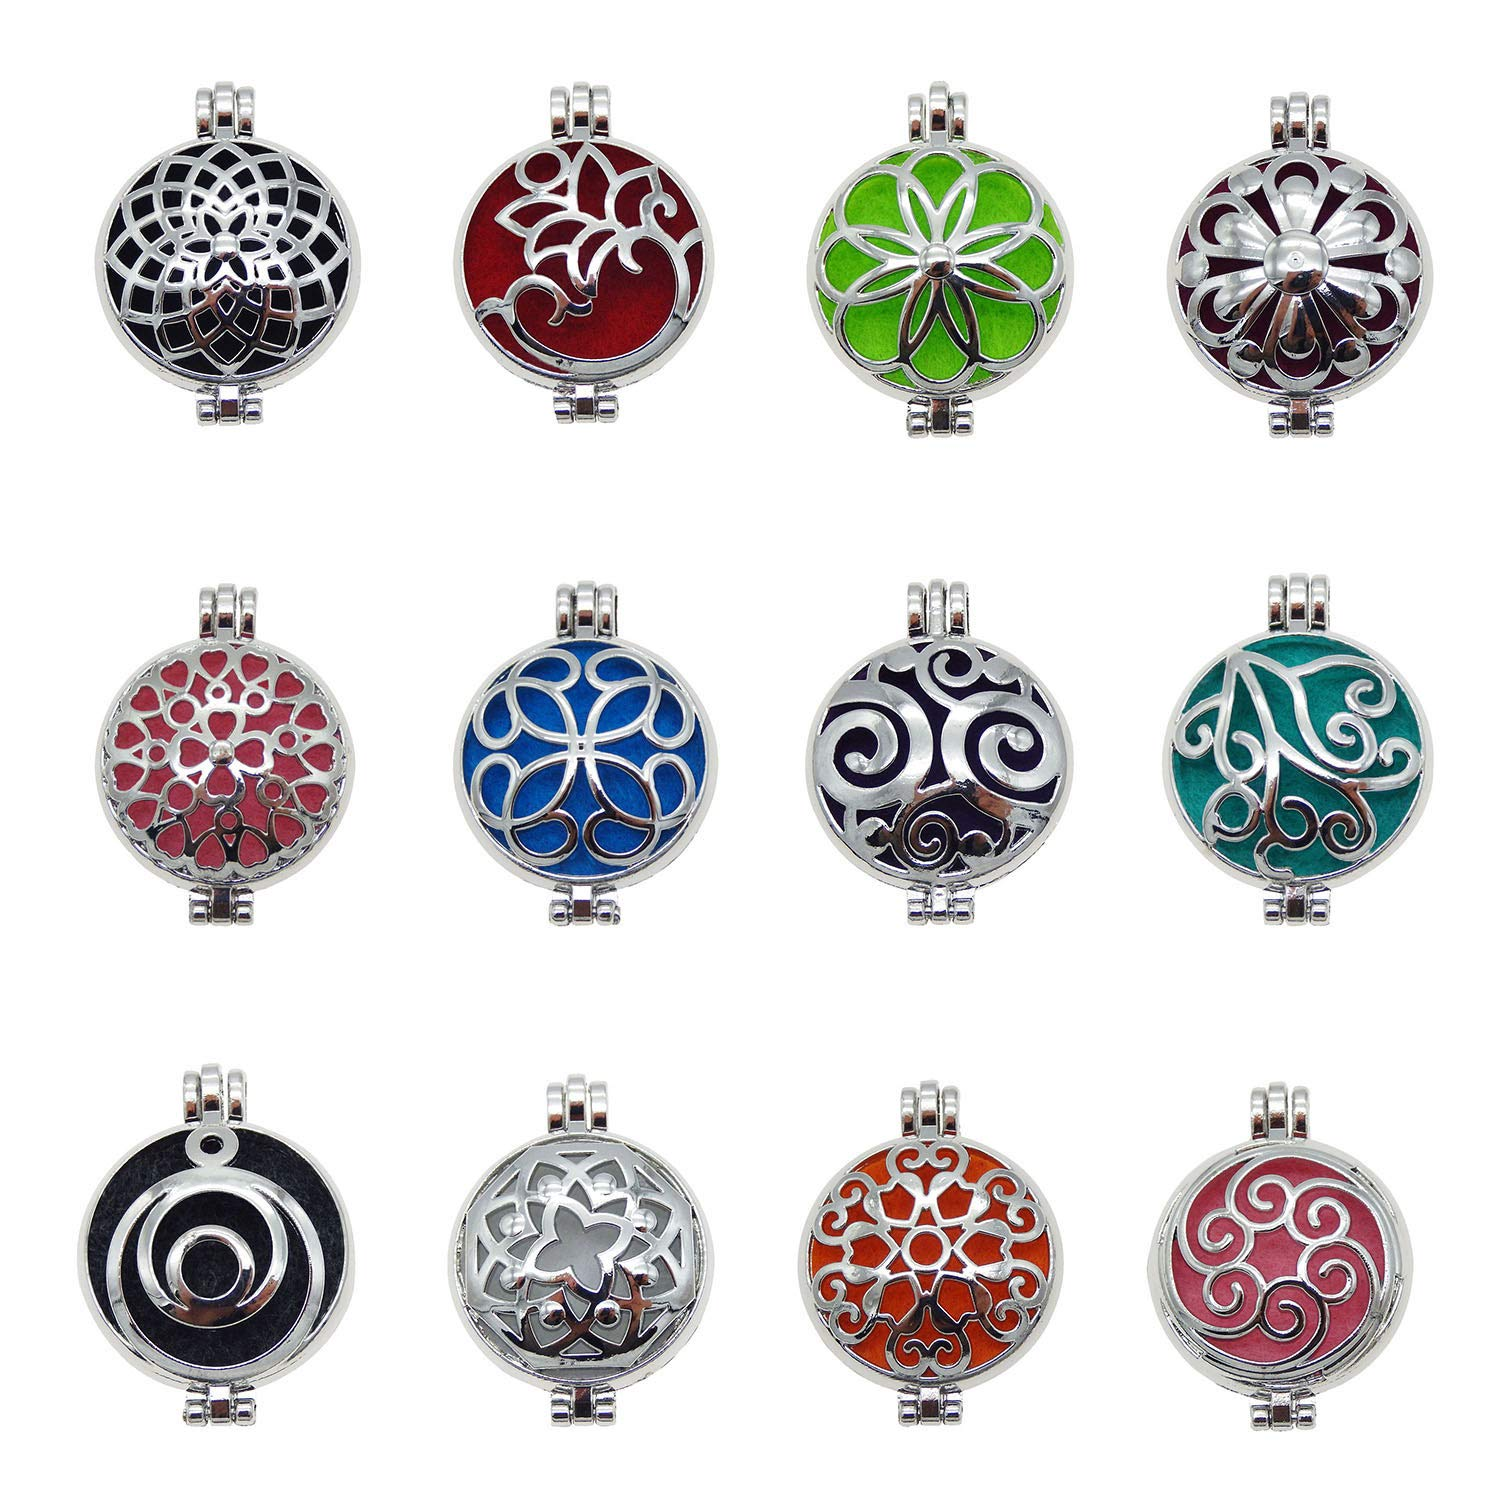 Julie Wang 24pcs Mixed Silver Locket for Aromatherapy Essential Oil Diffuser Pendant Necklace Diameter 1.3 inches